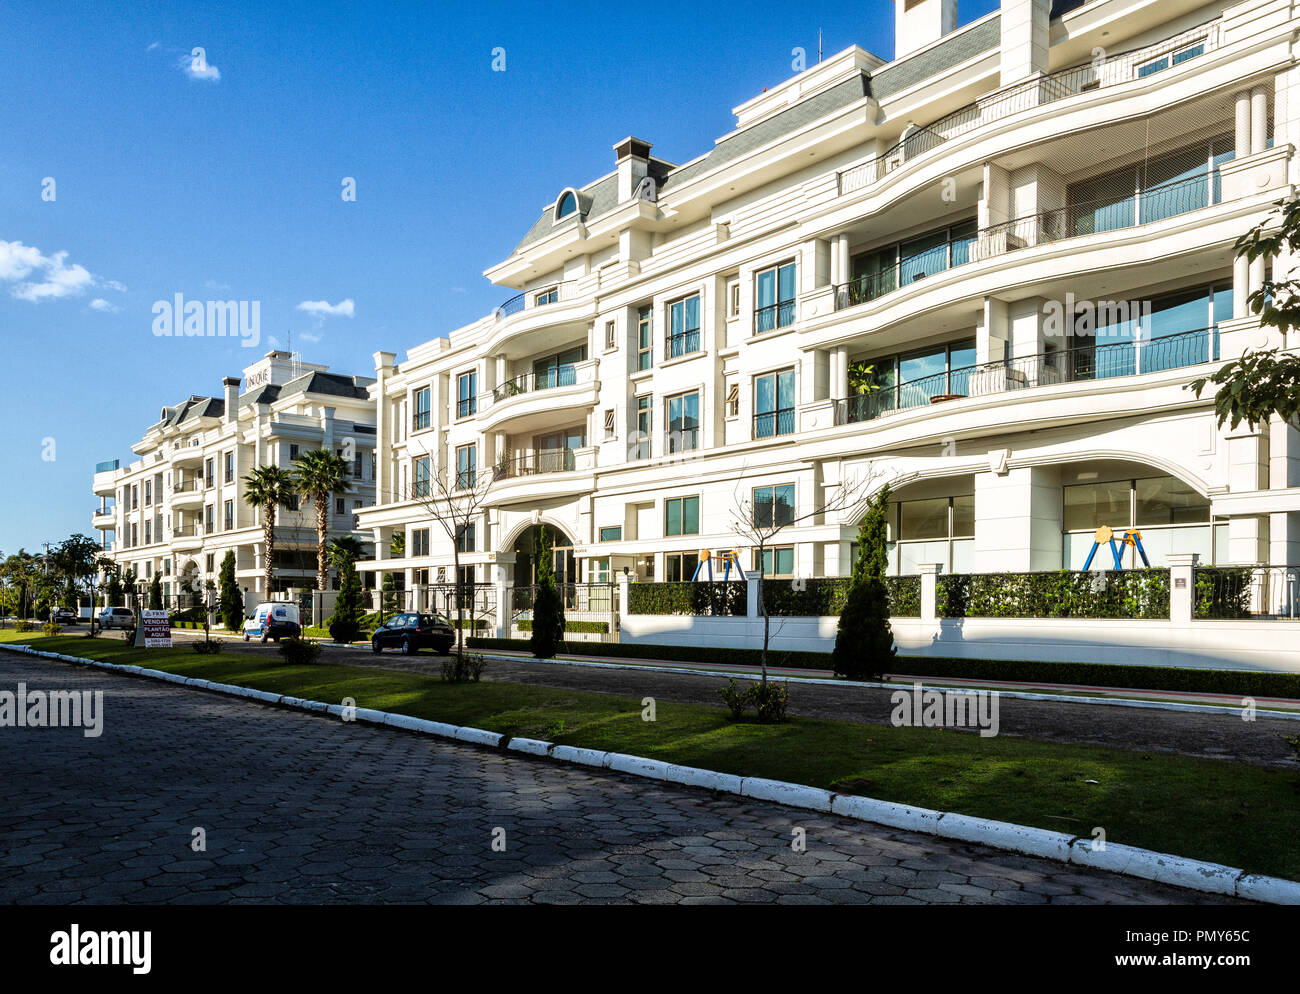 Building in the wealthy neighborhood of Jurere Internacional. Florianopolis, Santa Catarina, Brazil. - Stock Image